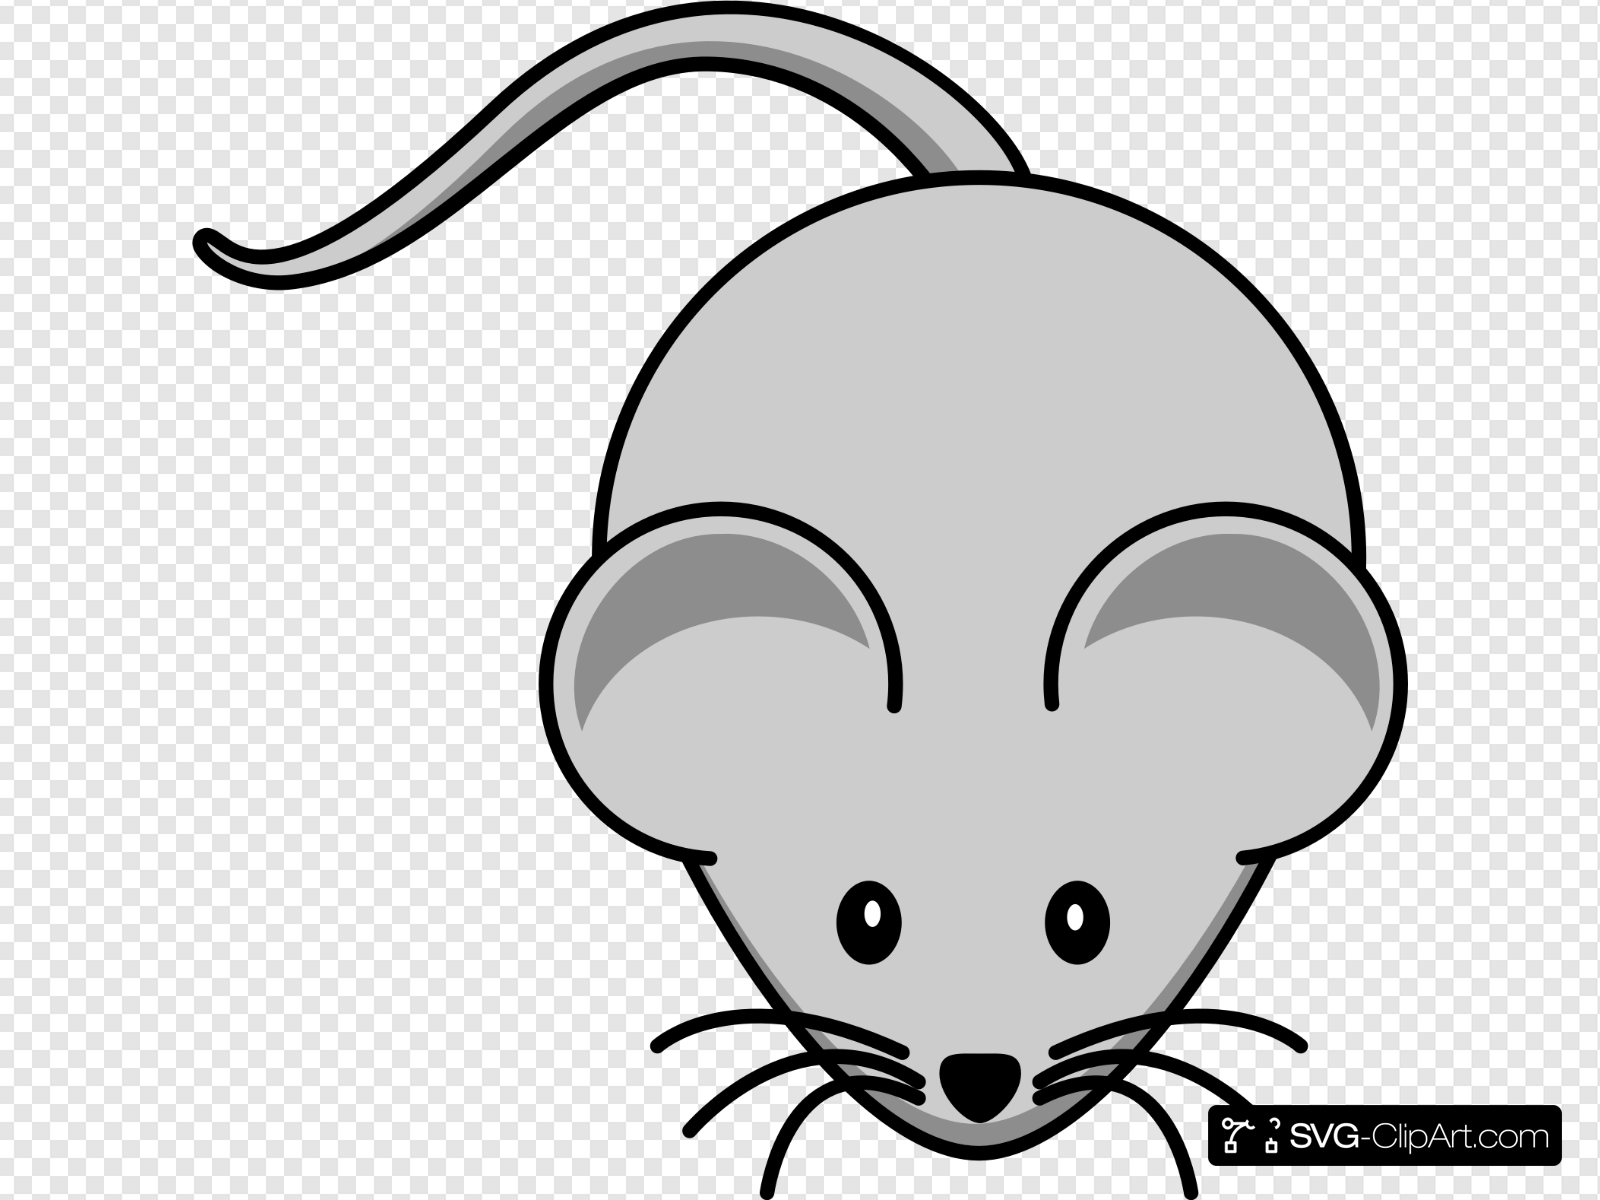 Simple Cartoon Mouse Clip art, Icon and SVG.